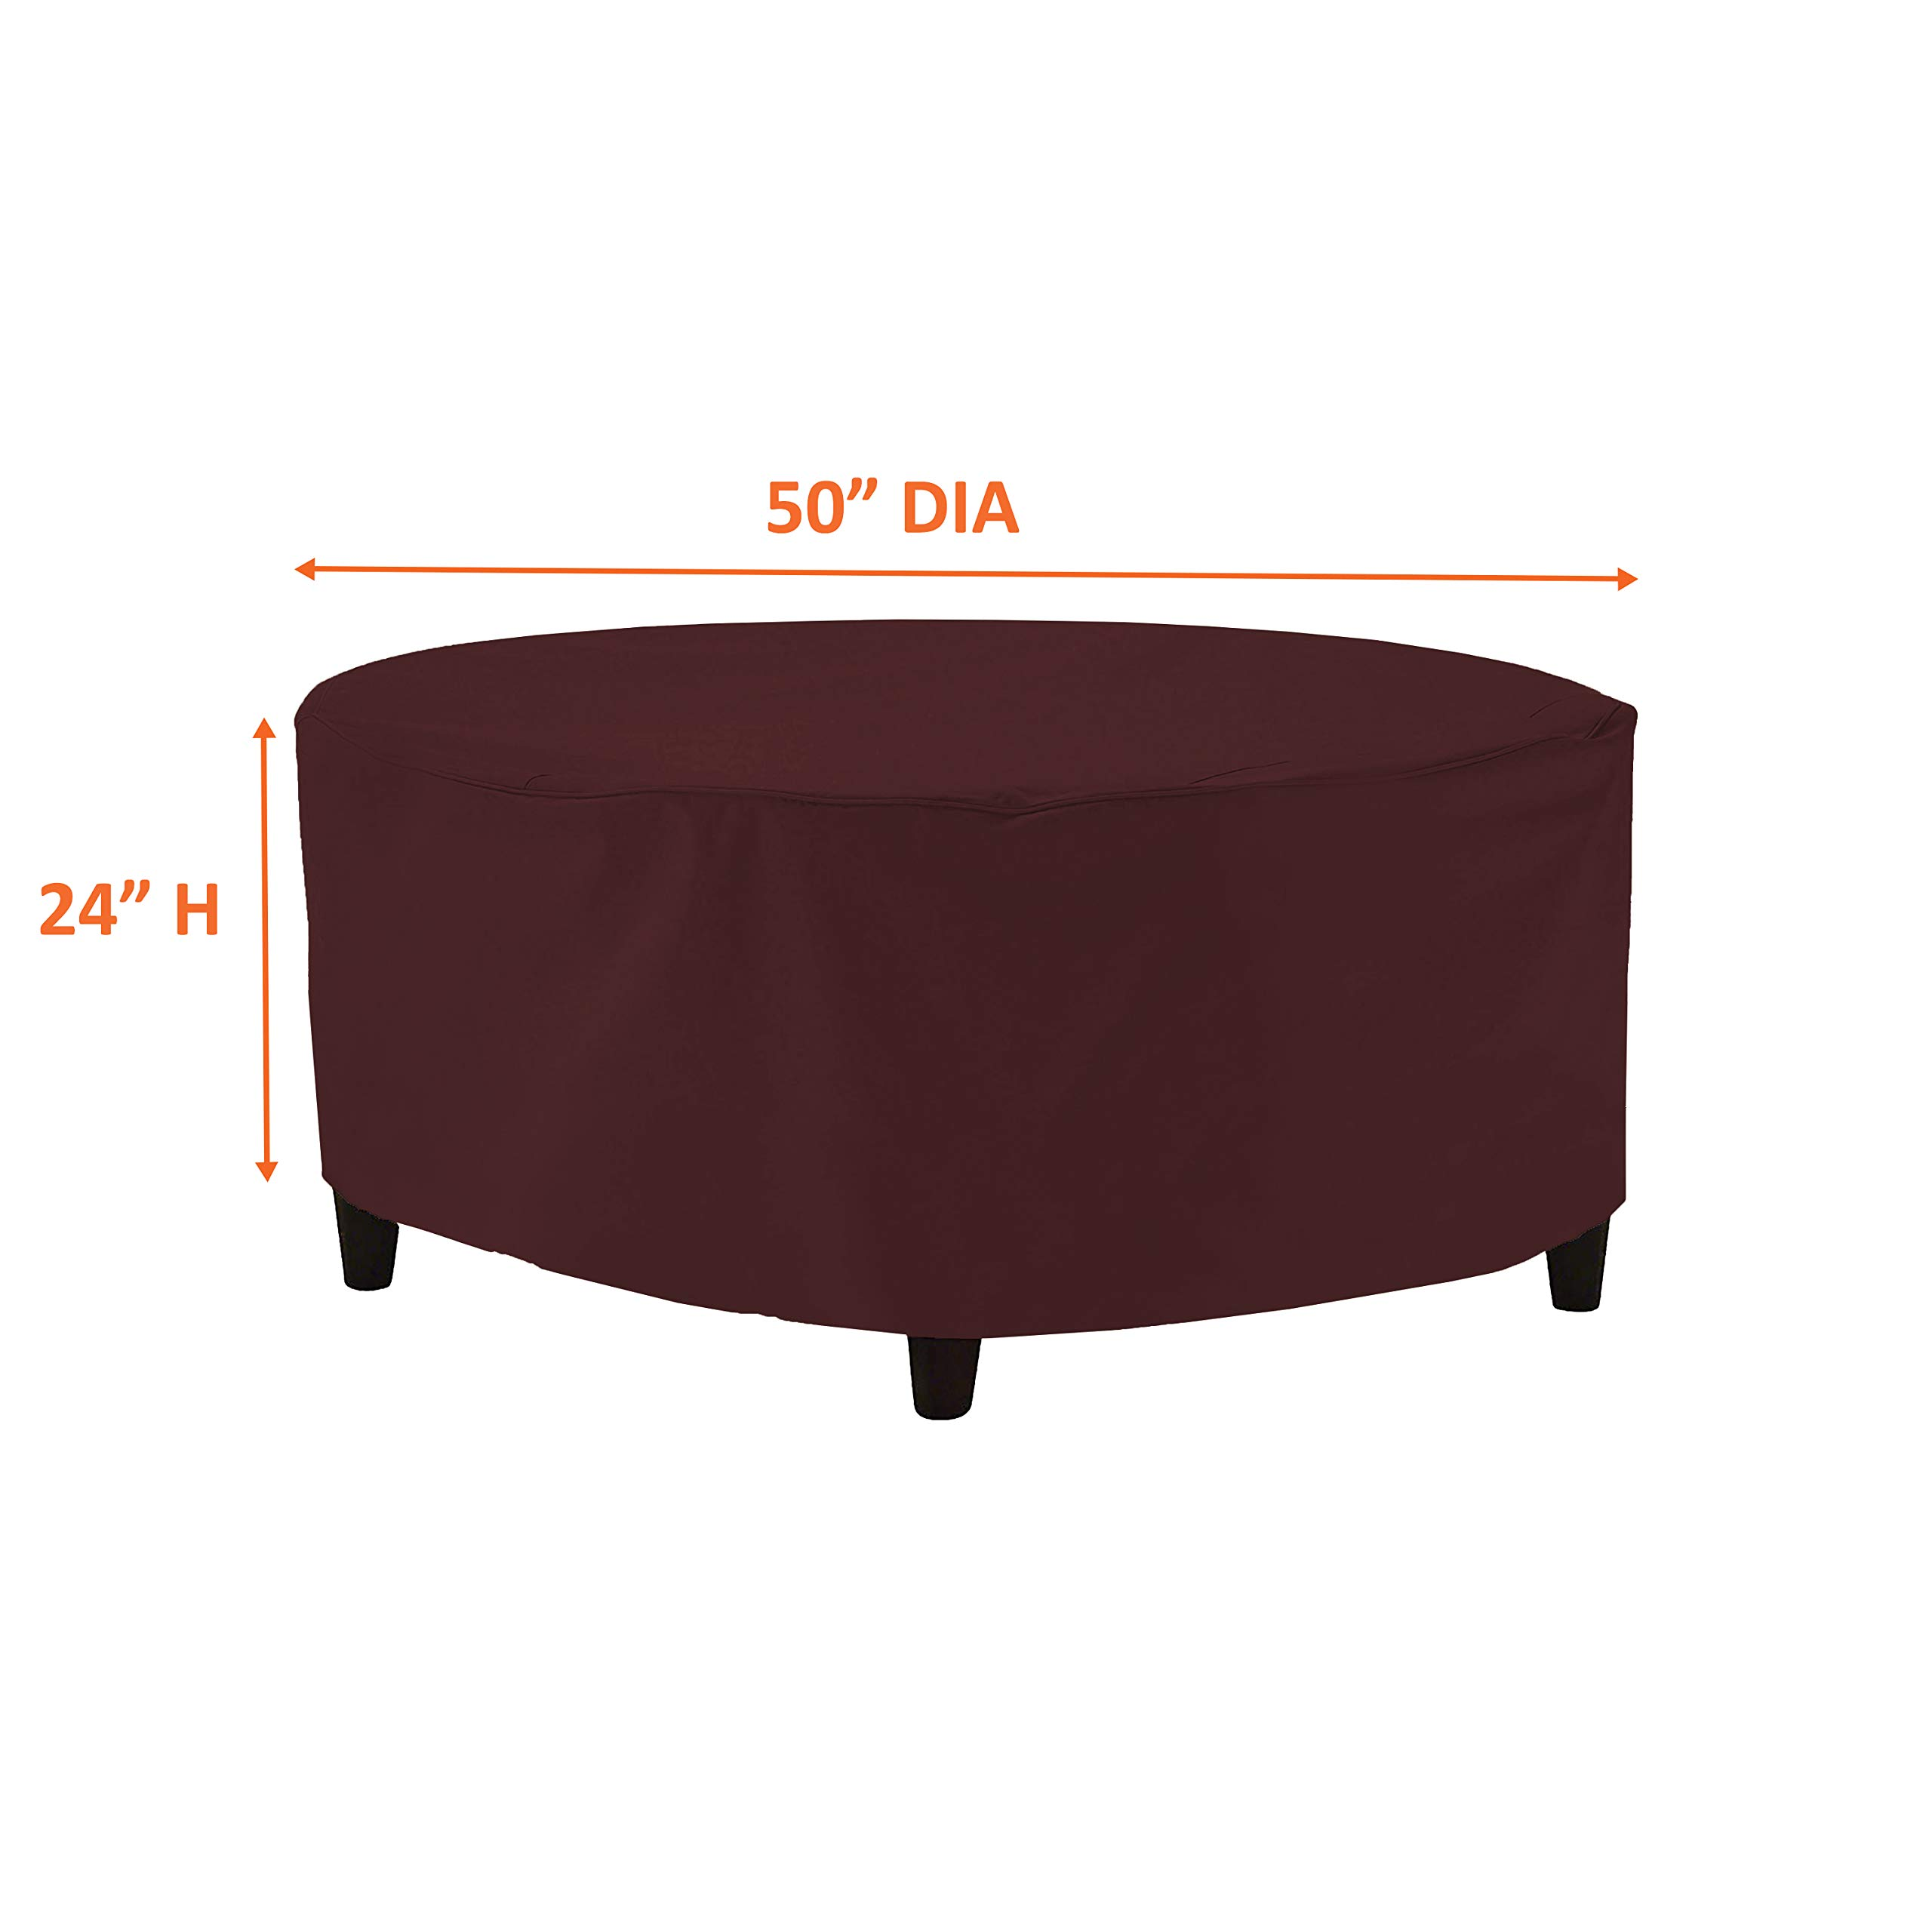 Outdoor Ottoman Cover 18 Oz - Waterproof & Weather Resistant Patio Furniture Covers - Round Ottoman Cover Heavy Duty Fabric with Drawstring for Snug fit (50'' Dia x 24'' H, Burgundy) by COVERS & ALL (Image #2)